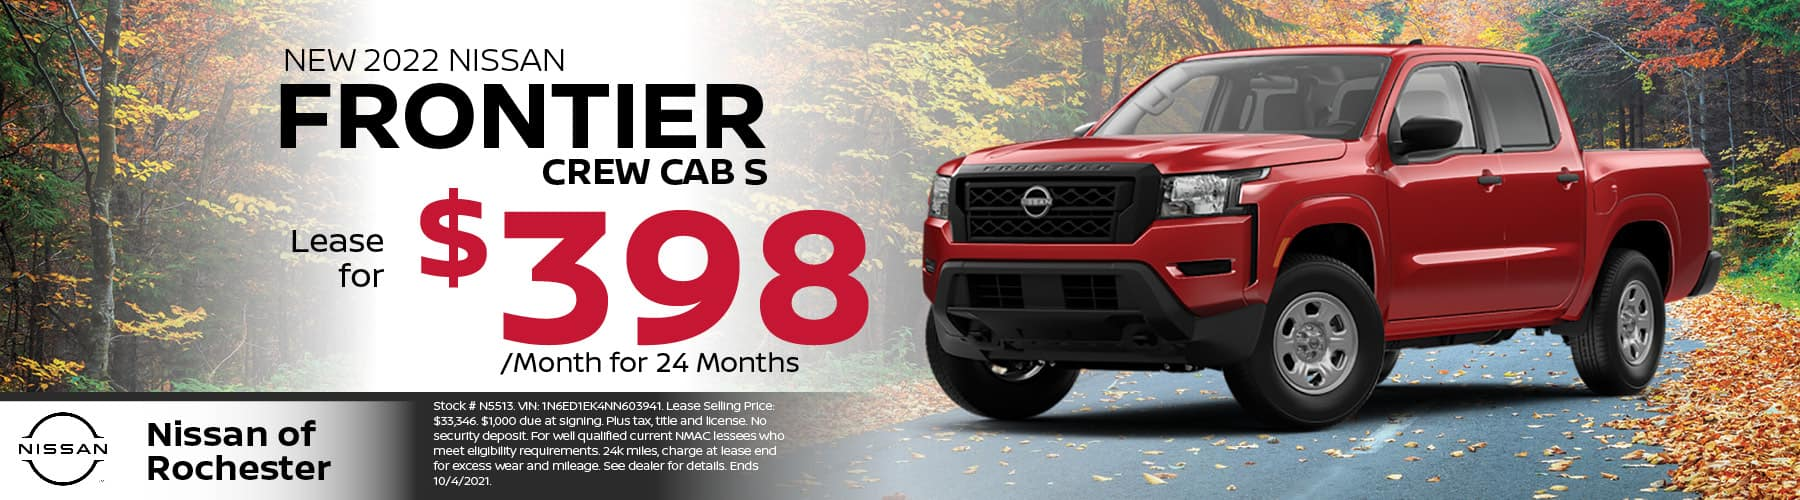 2022 Nissan Frontier Special Offer | Nissan of Rochester, MN